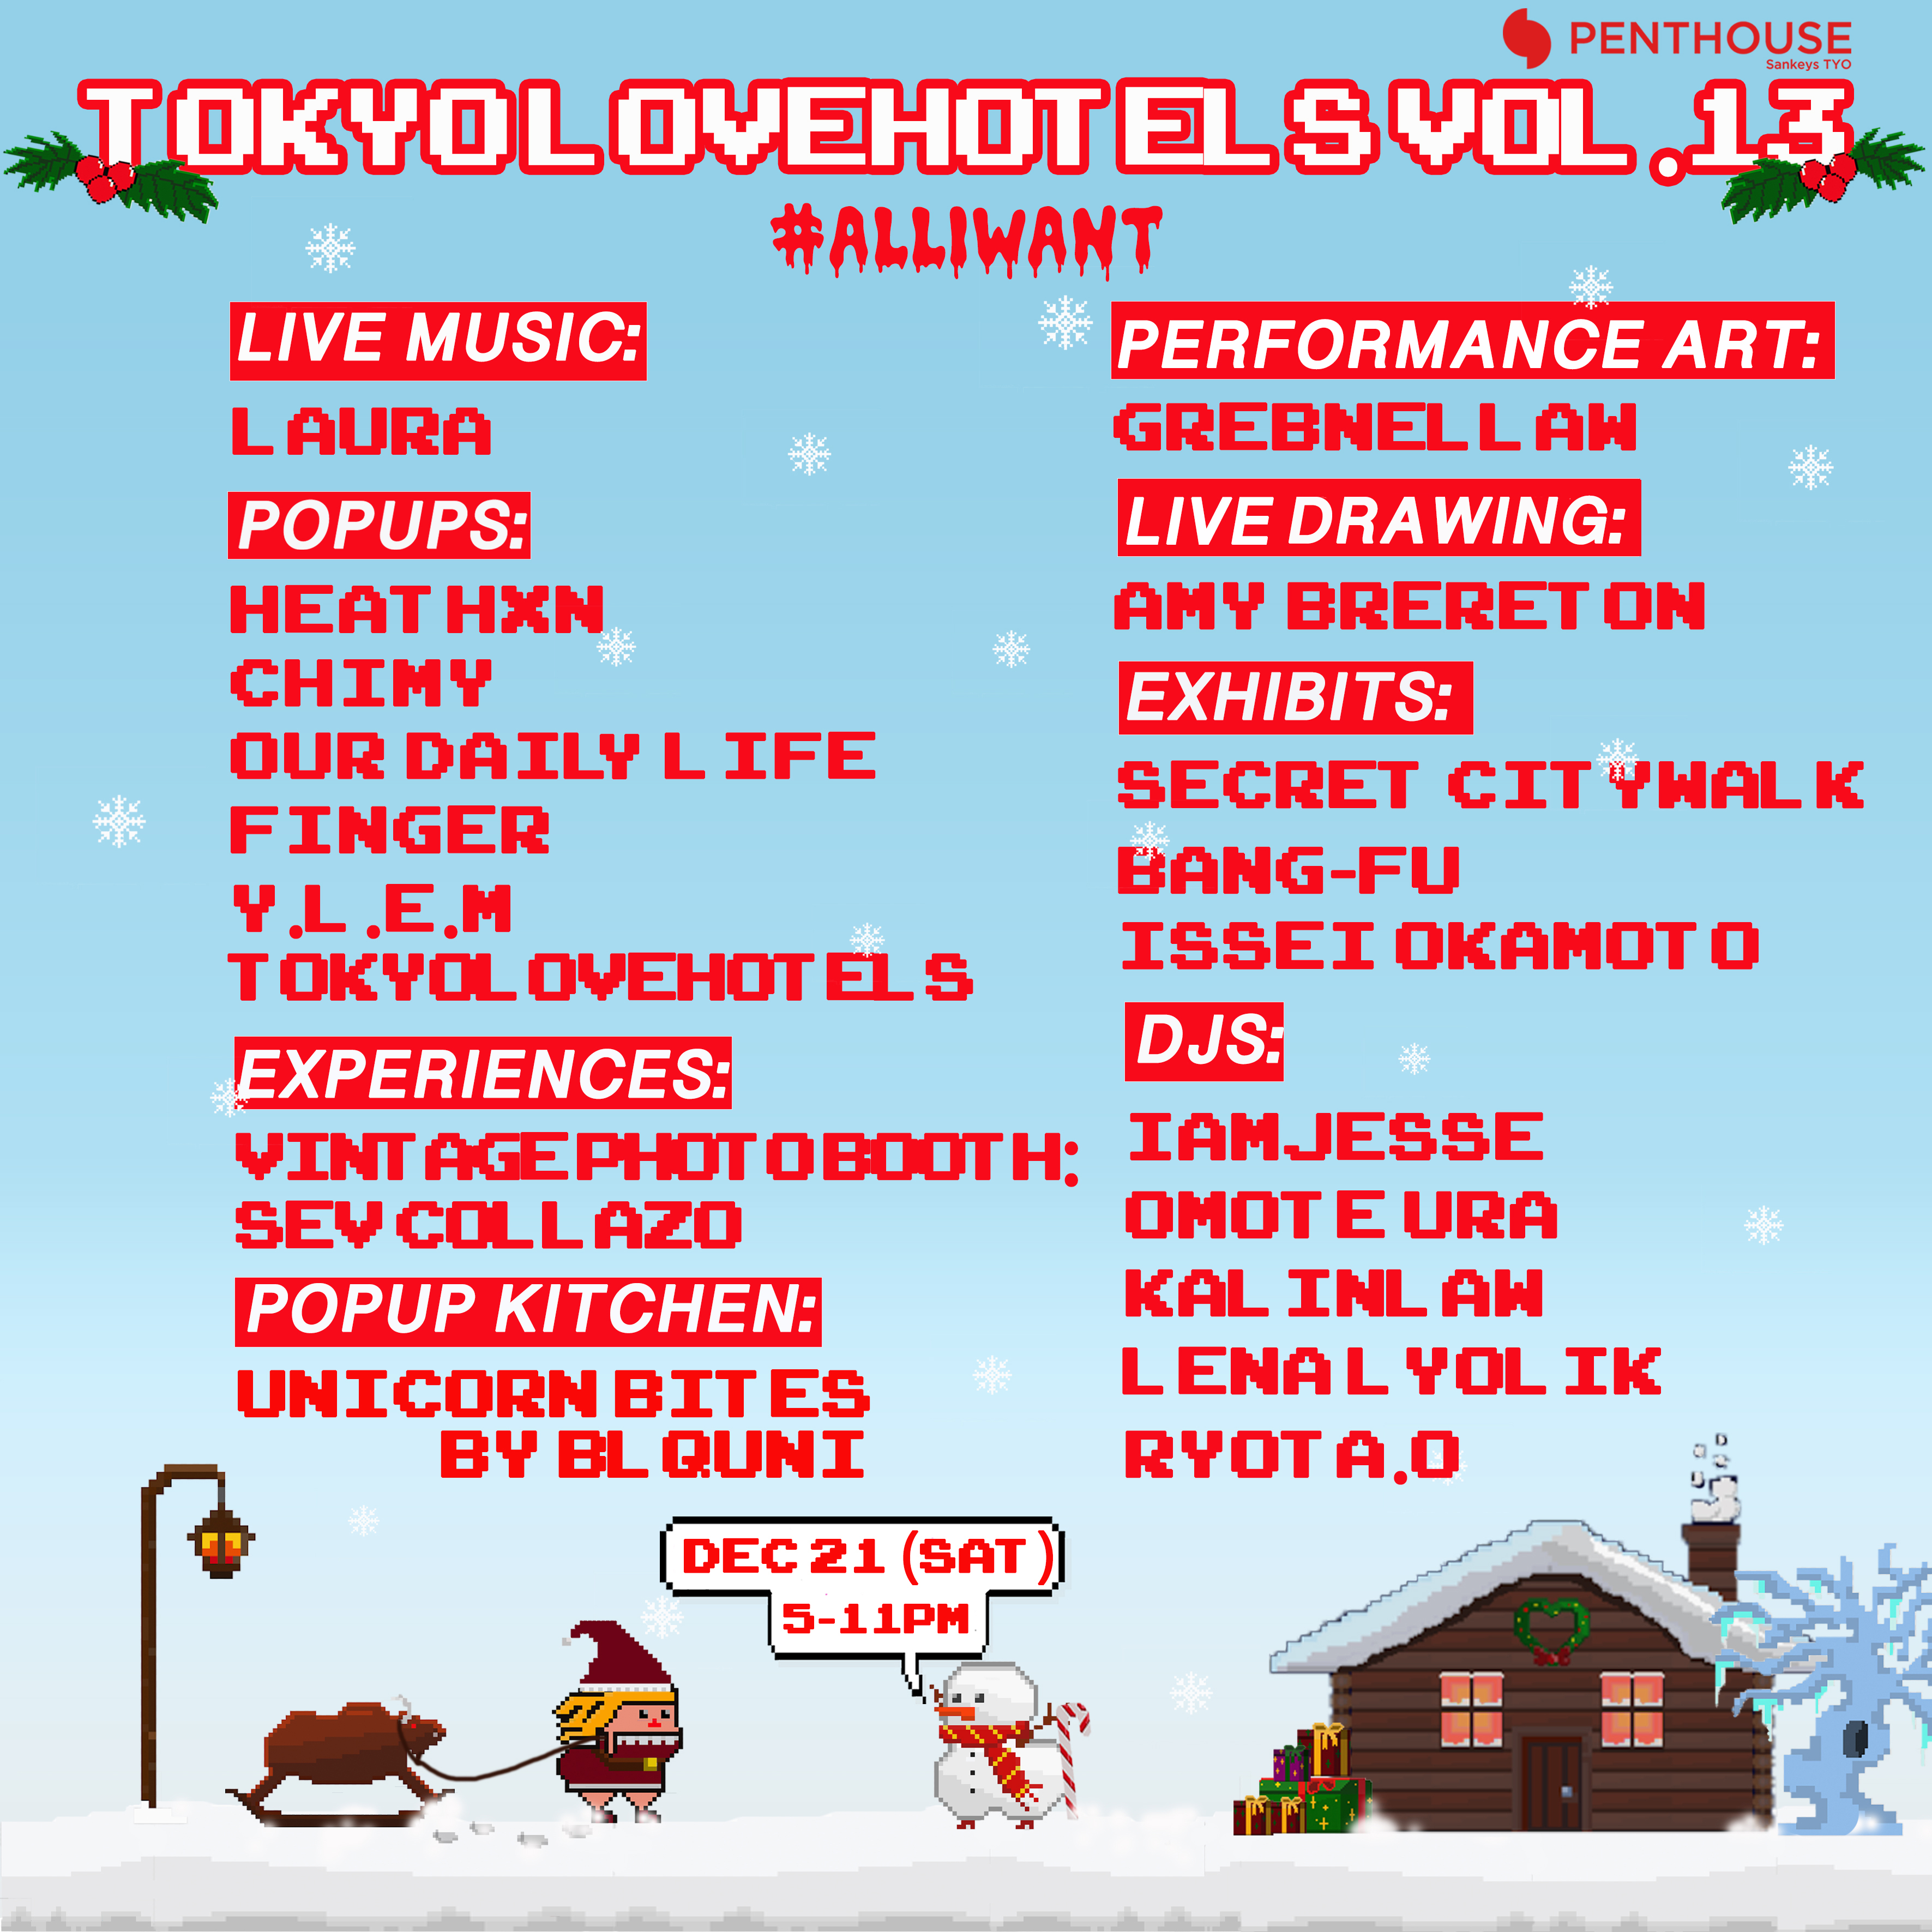 TOKYO LOVEHOTELS Vol.13 #ALLIWANT